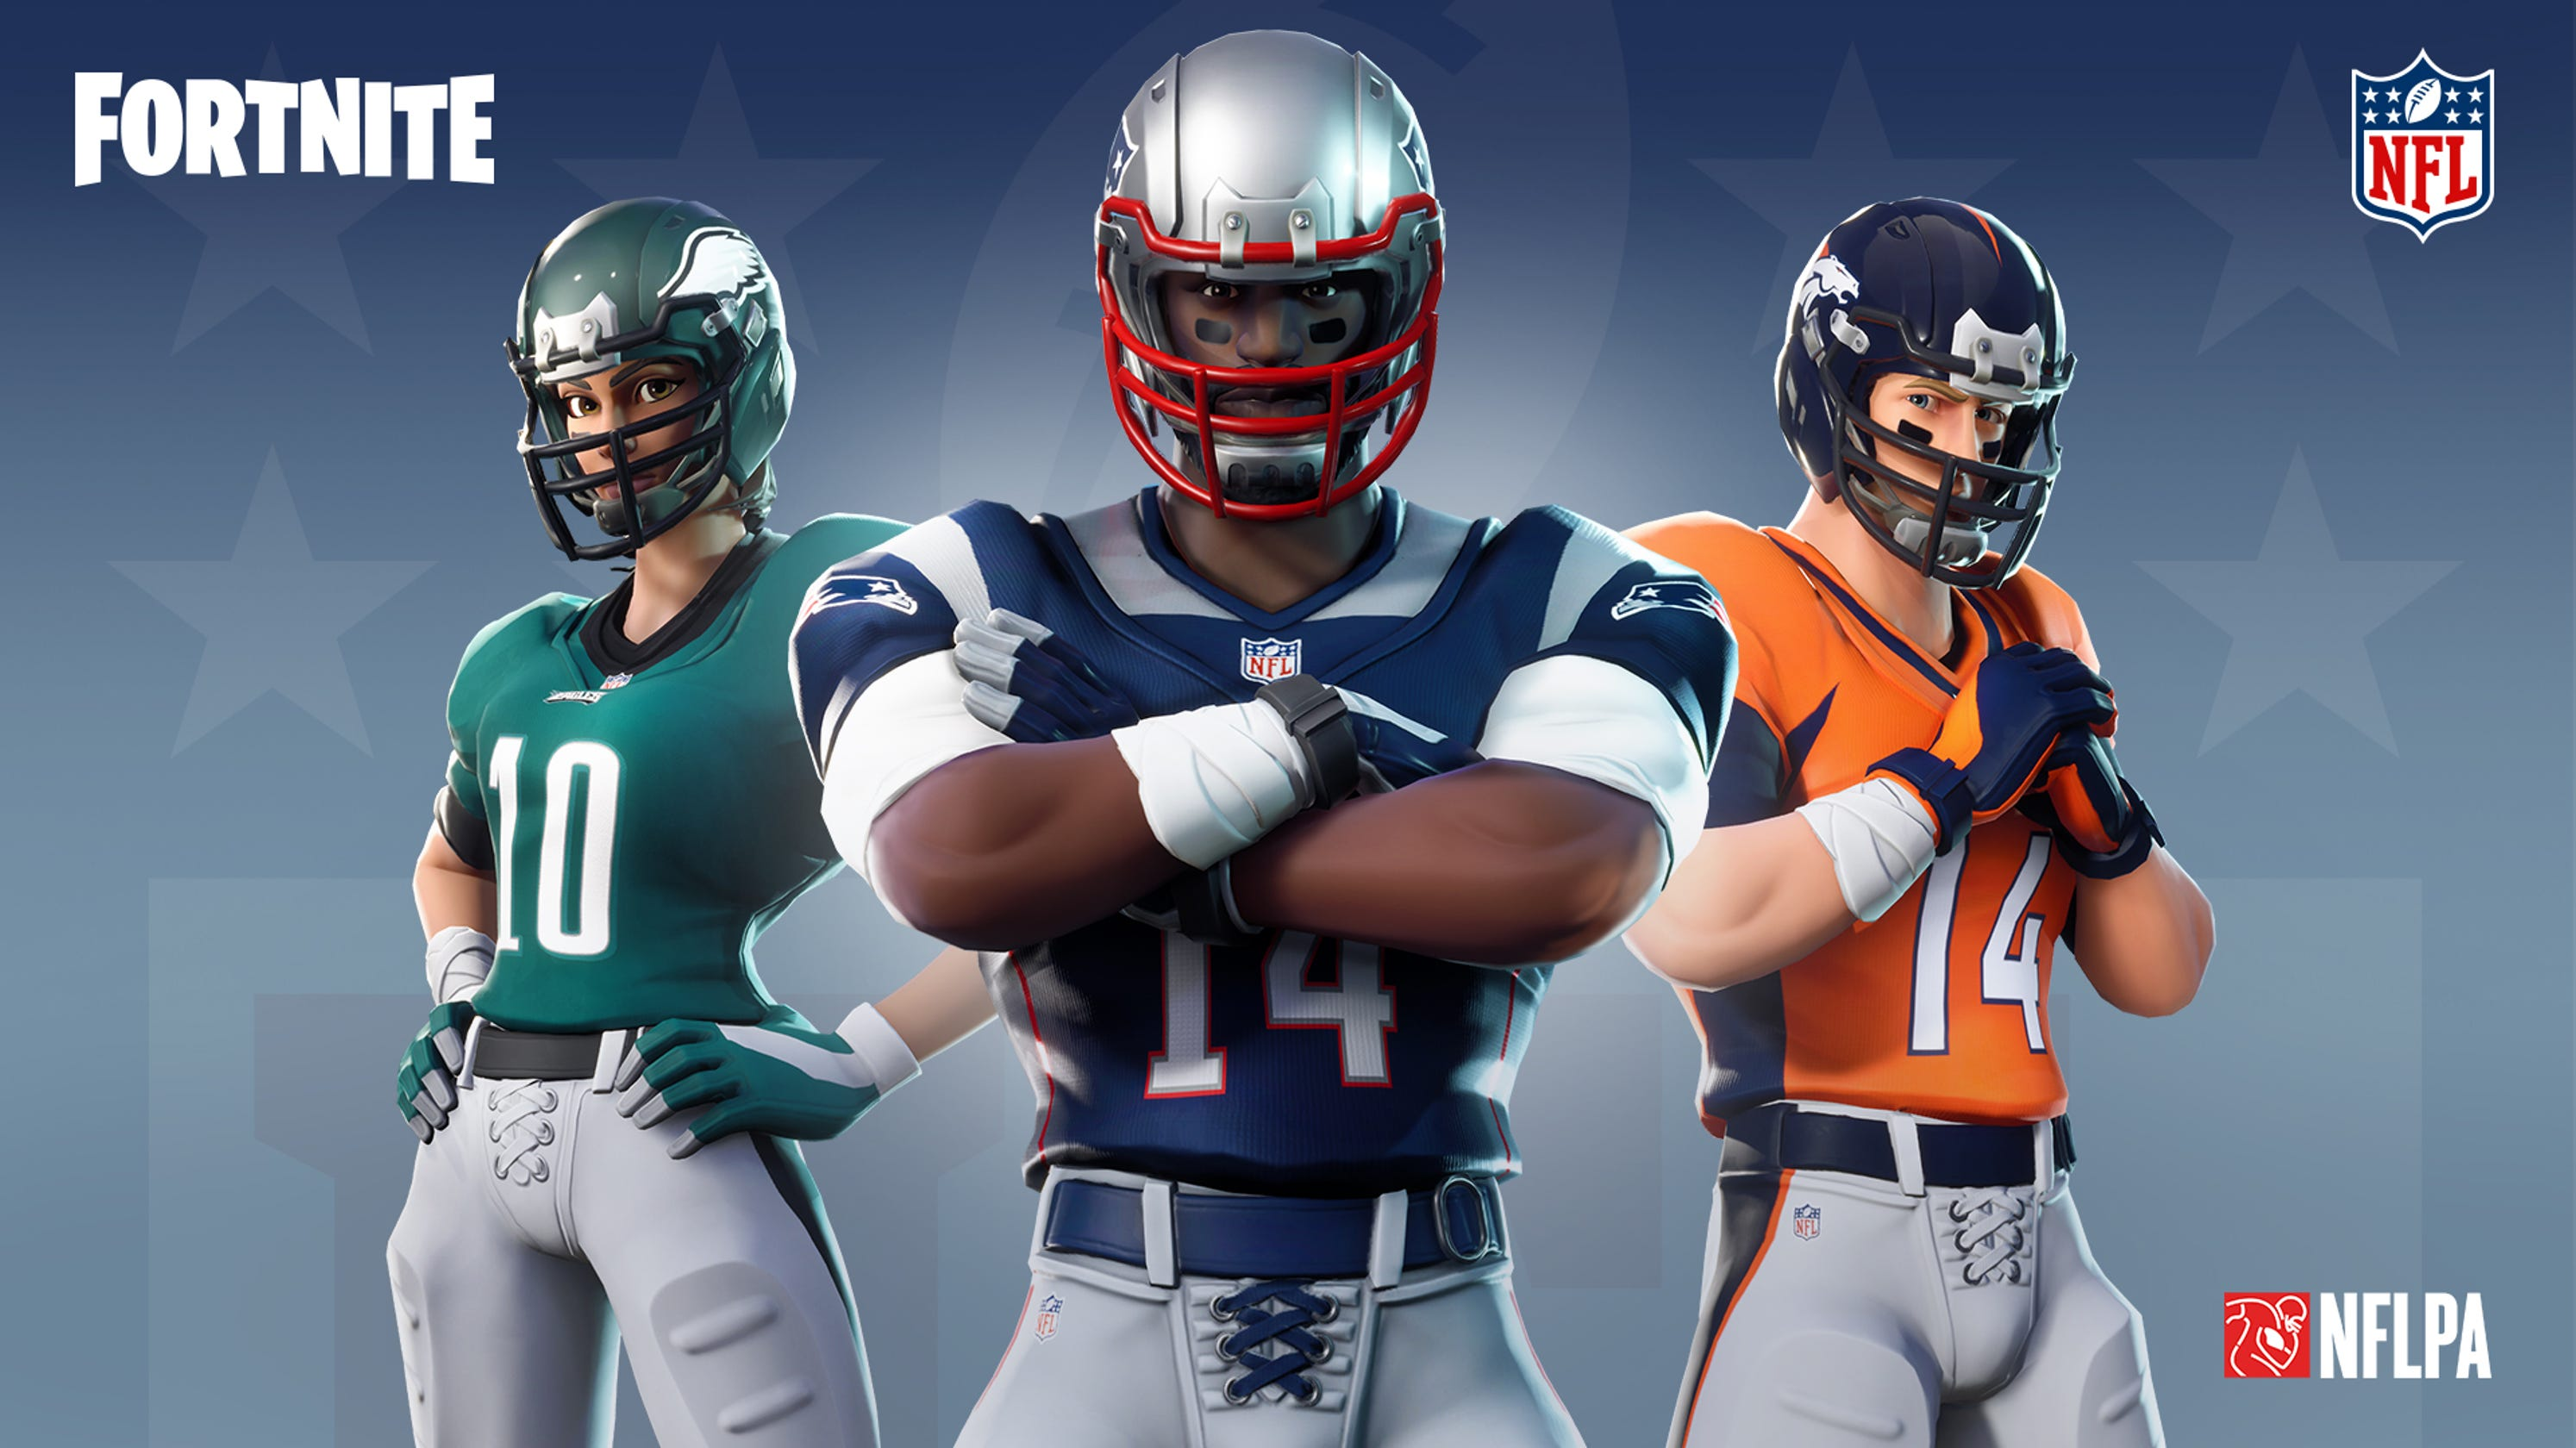 058c19cf6 Fortnite  adds NFL uniforms and other football gear